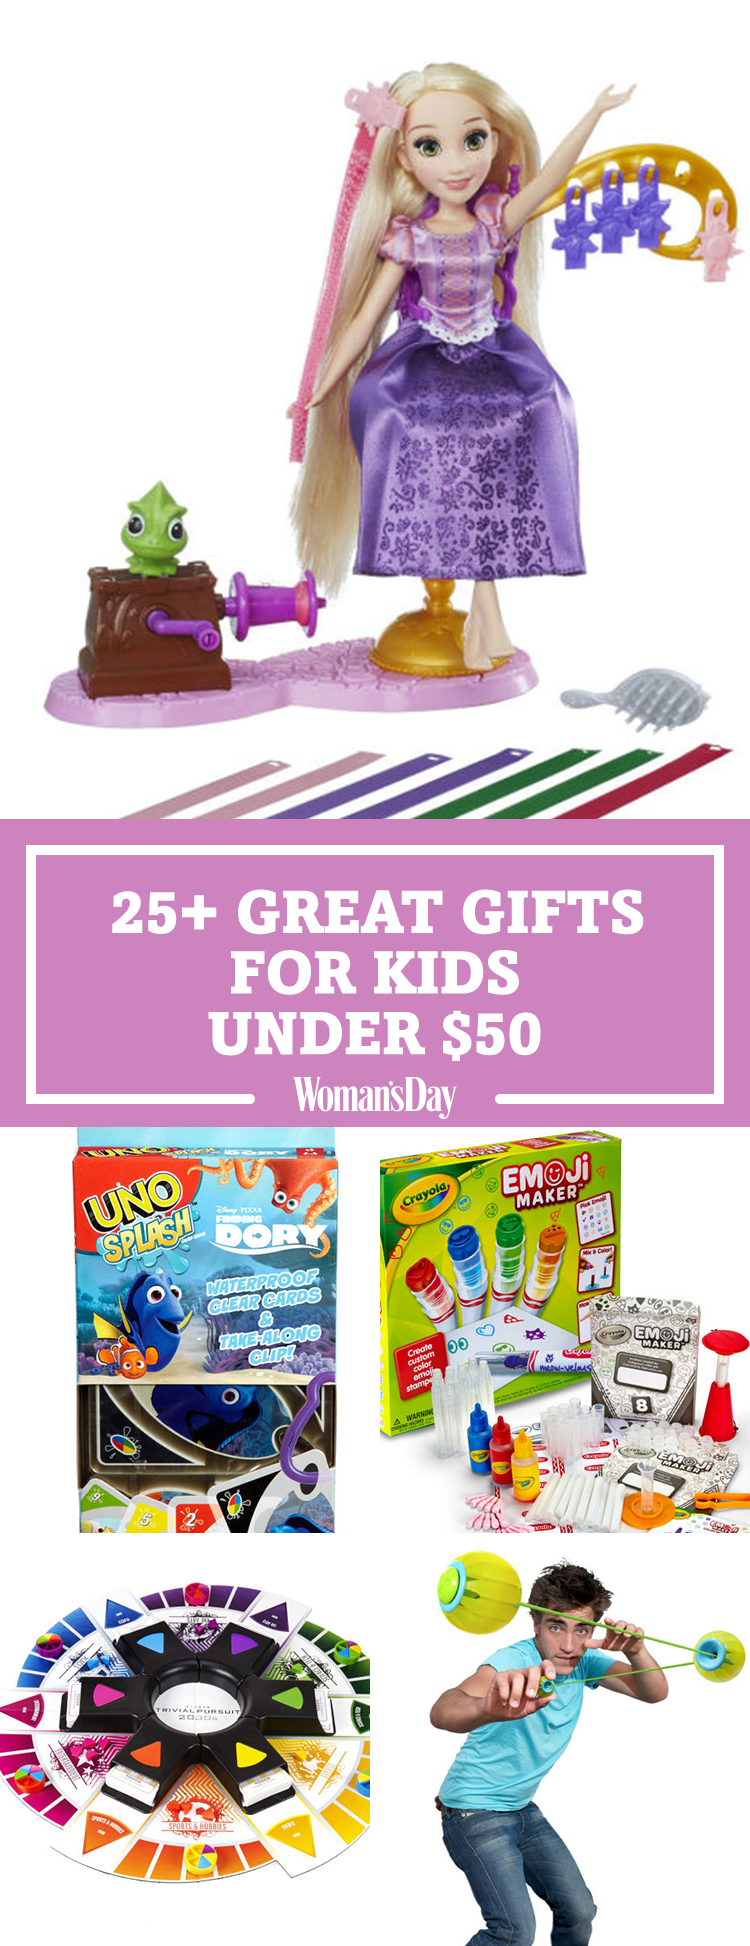 50 Best Christmas Gifts for Kids - 2018 Holiday Gift Ideas for ...